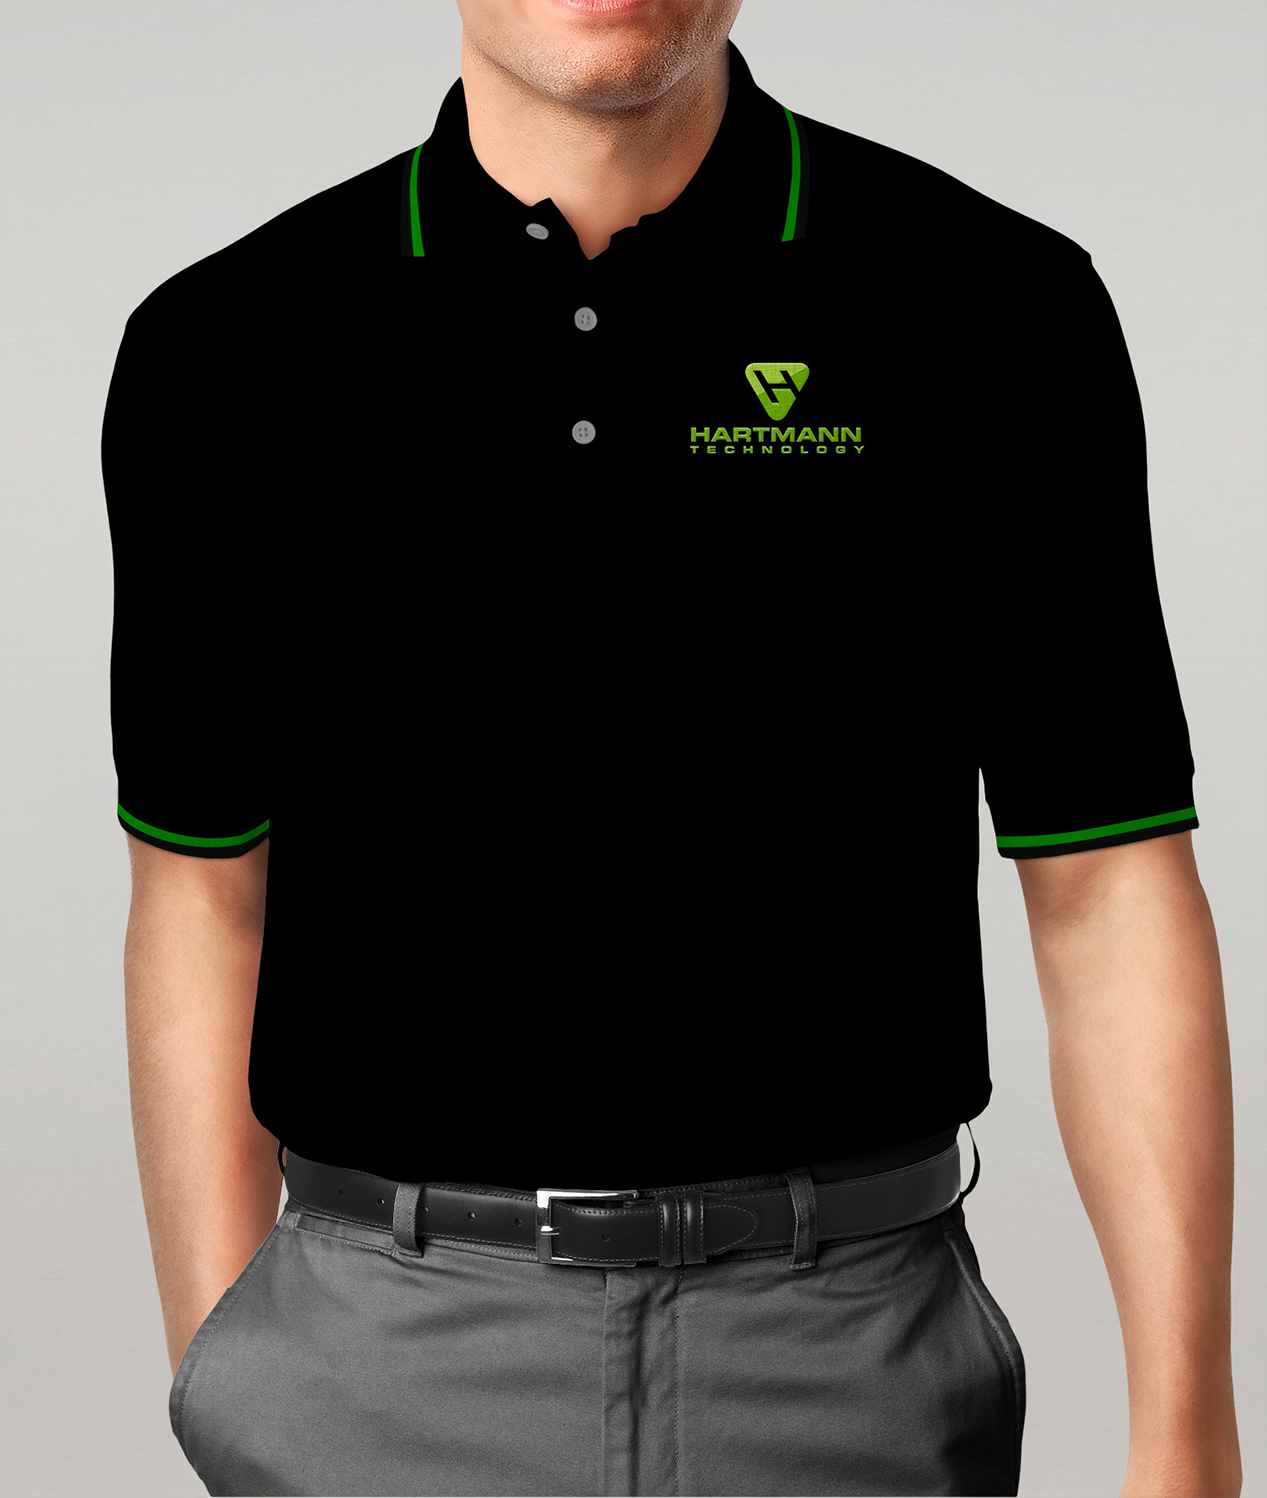 T Shirt Design (Design #9696954) Submitted To Polo Shirt Design For High